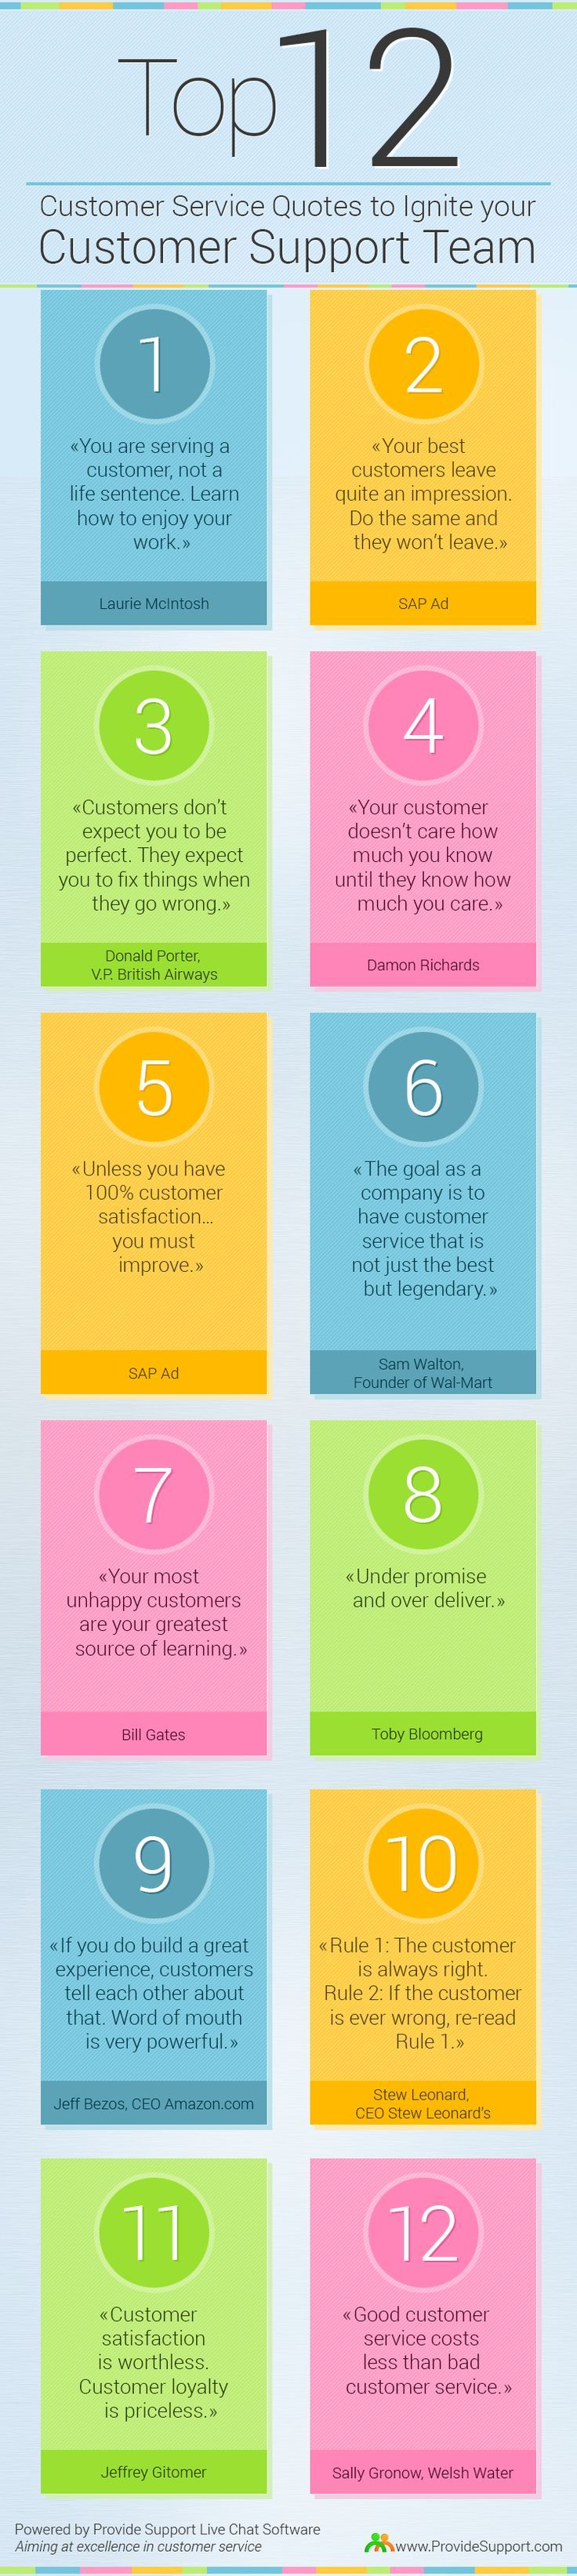 best practices the customer service experience